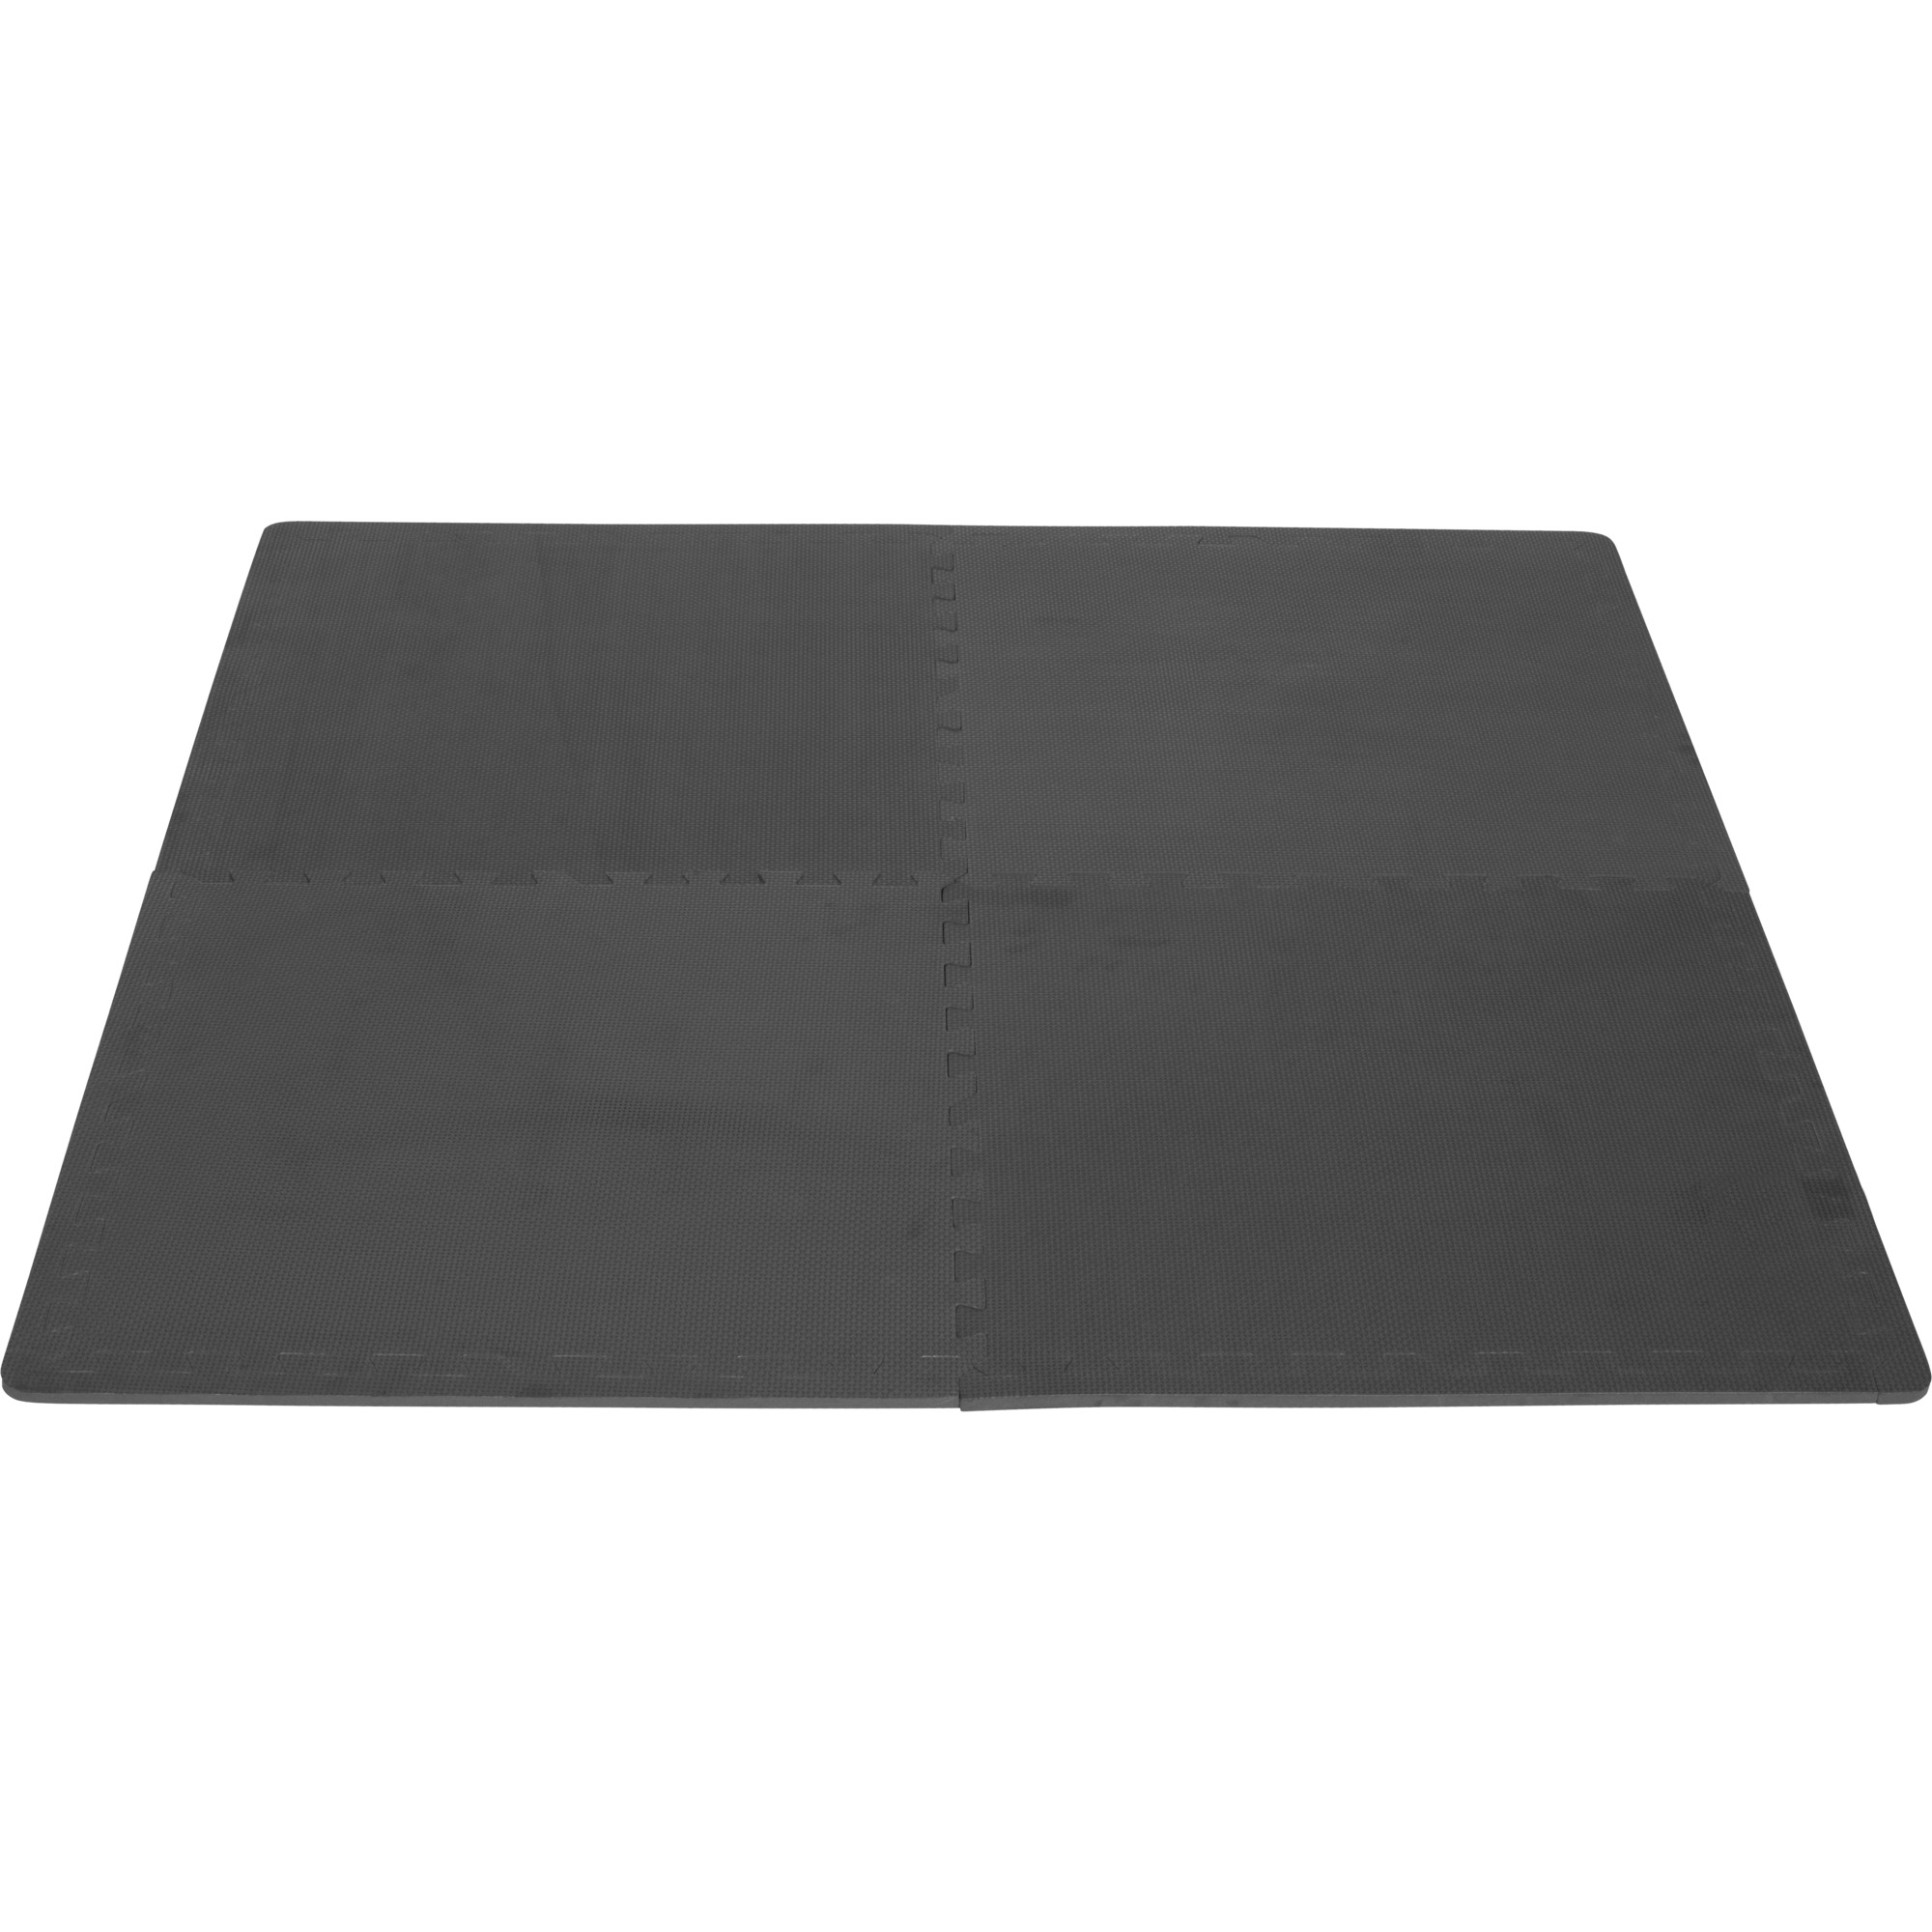 carrelage design tapis puzzle mousse moderne design pour carrelage de sol et rev tement de tapis. Black Bedroom Furniture Sets. Home Design Ideas